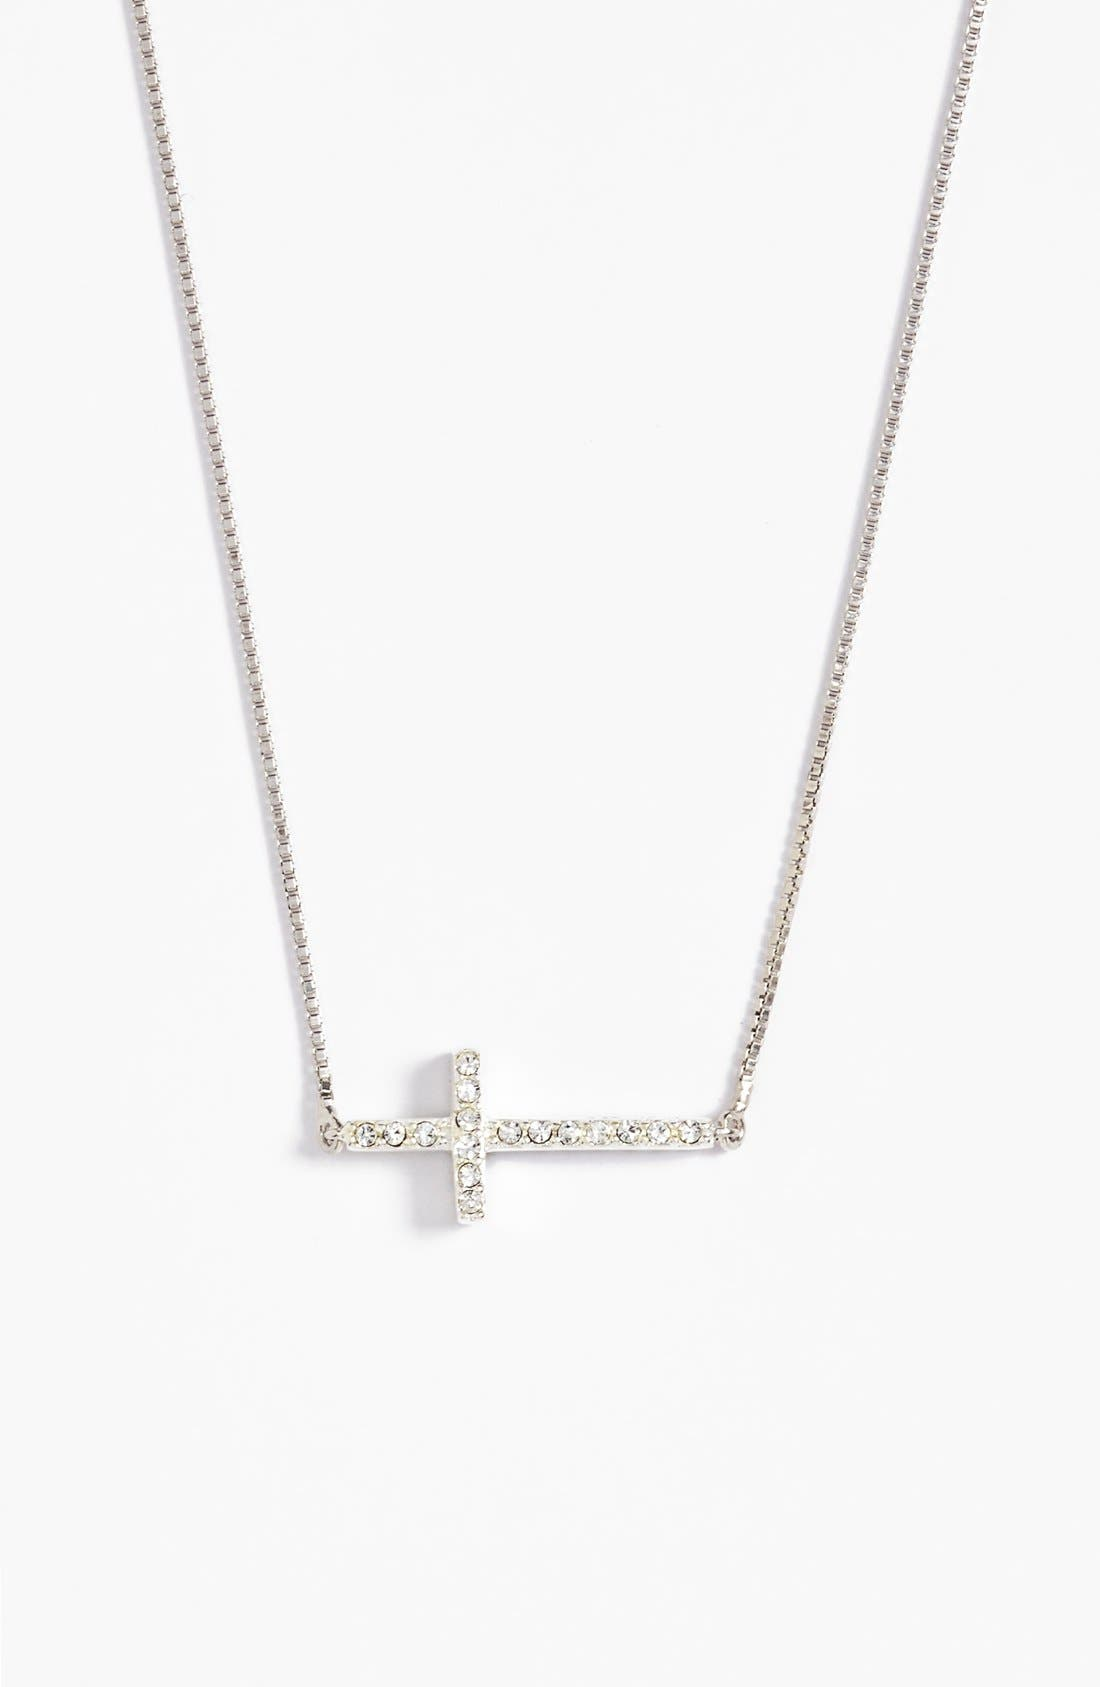 Main Image - Judith Jack Reversible Pavé Cross Pendant Necklace